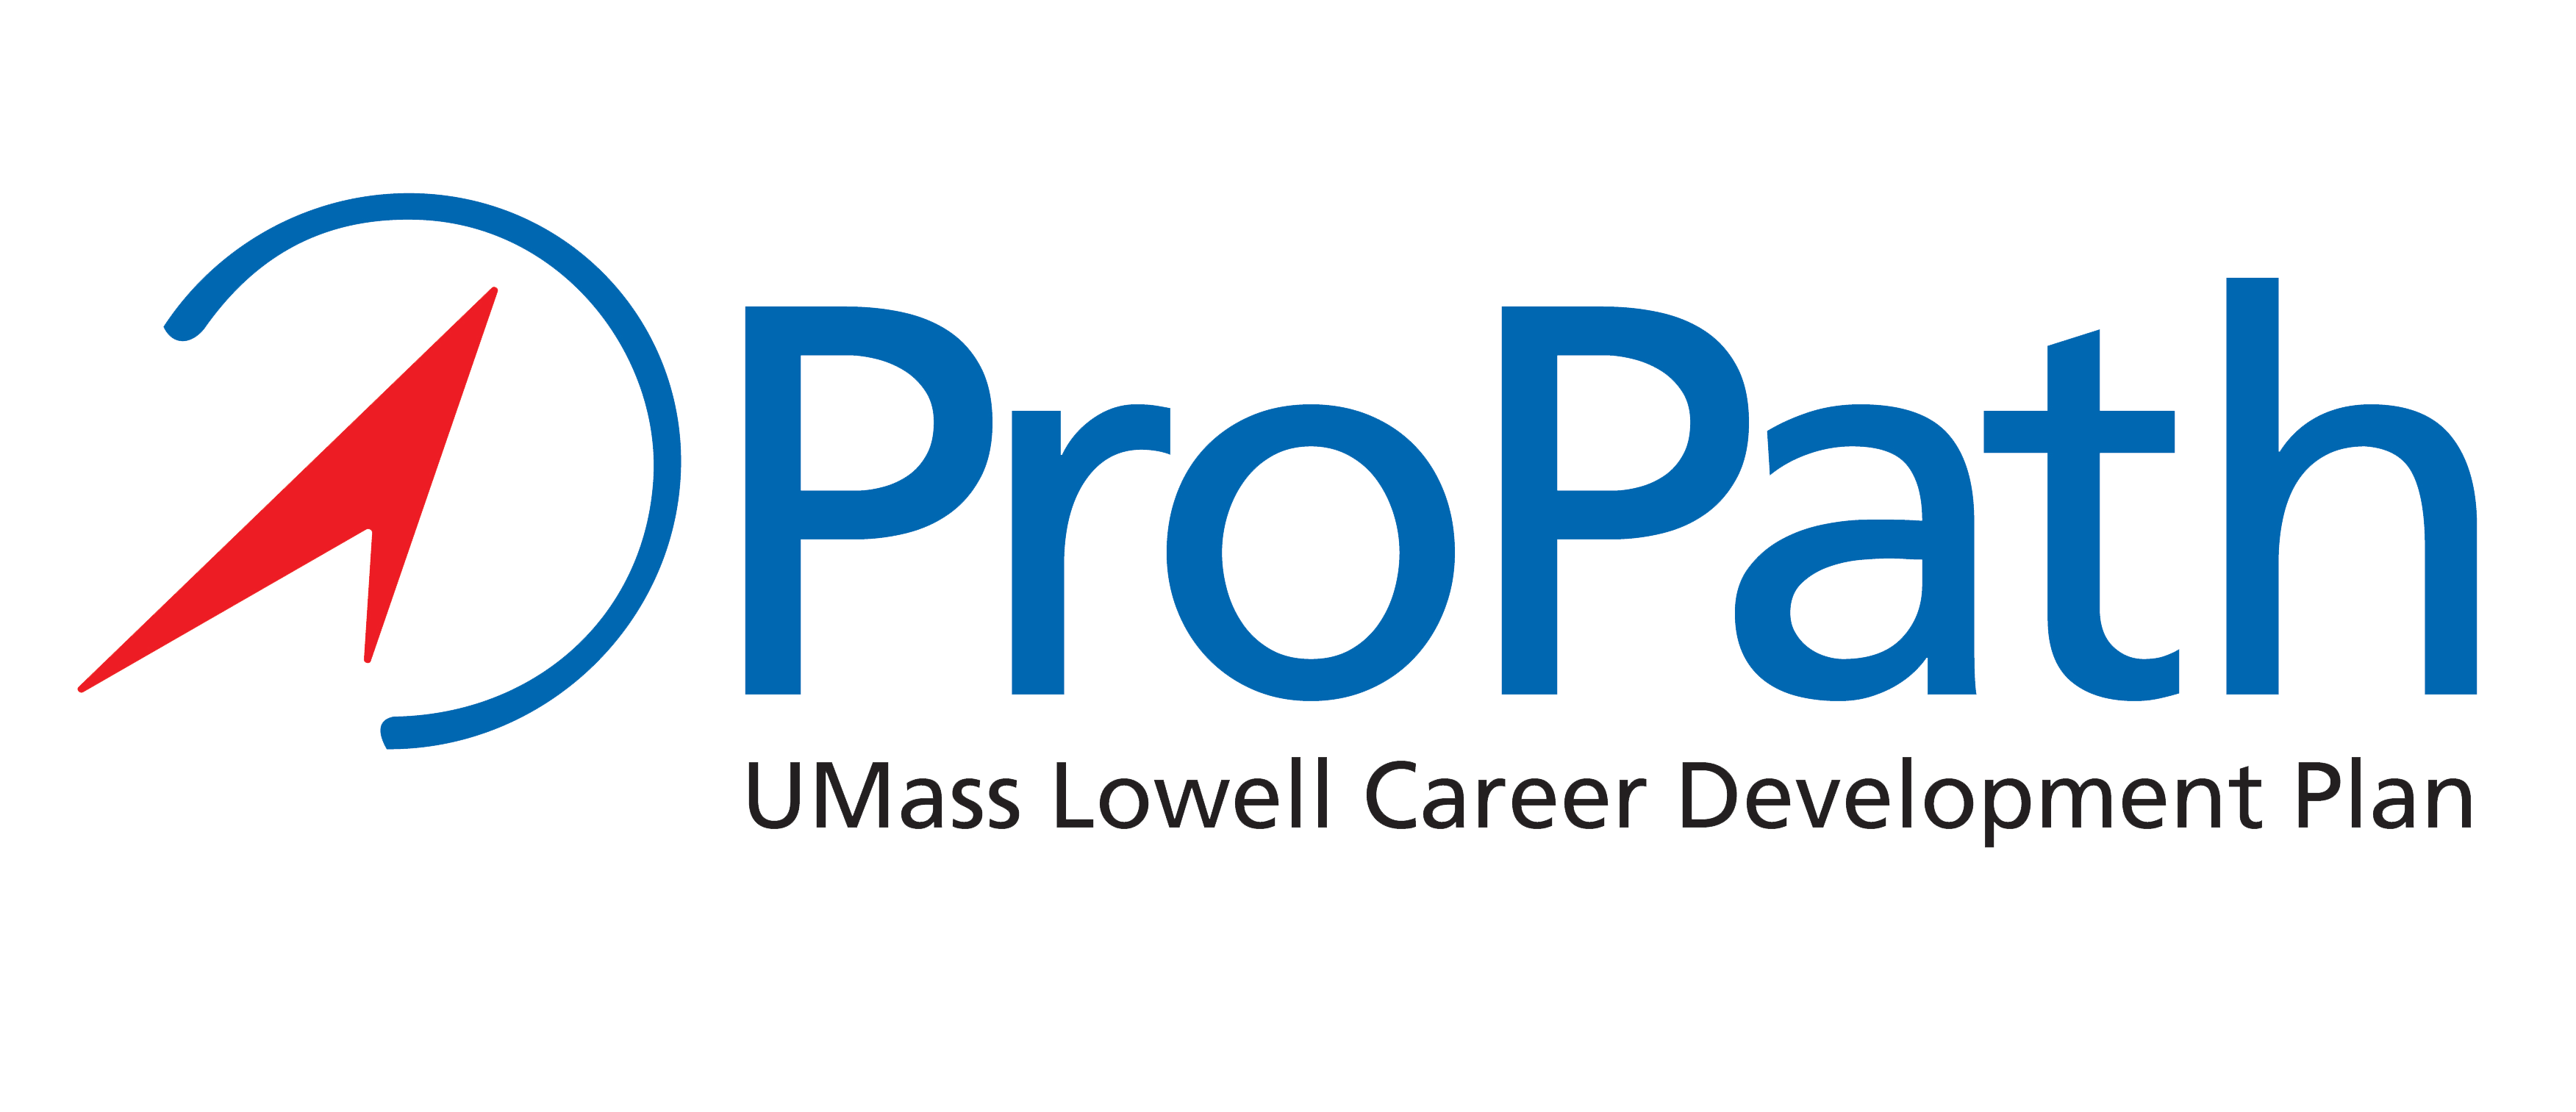 propath umass lowell propath provides you a structured approach to career planning and development integrating experiential learning